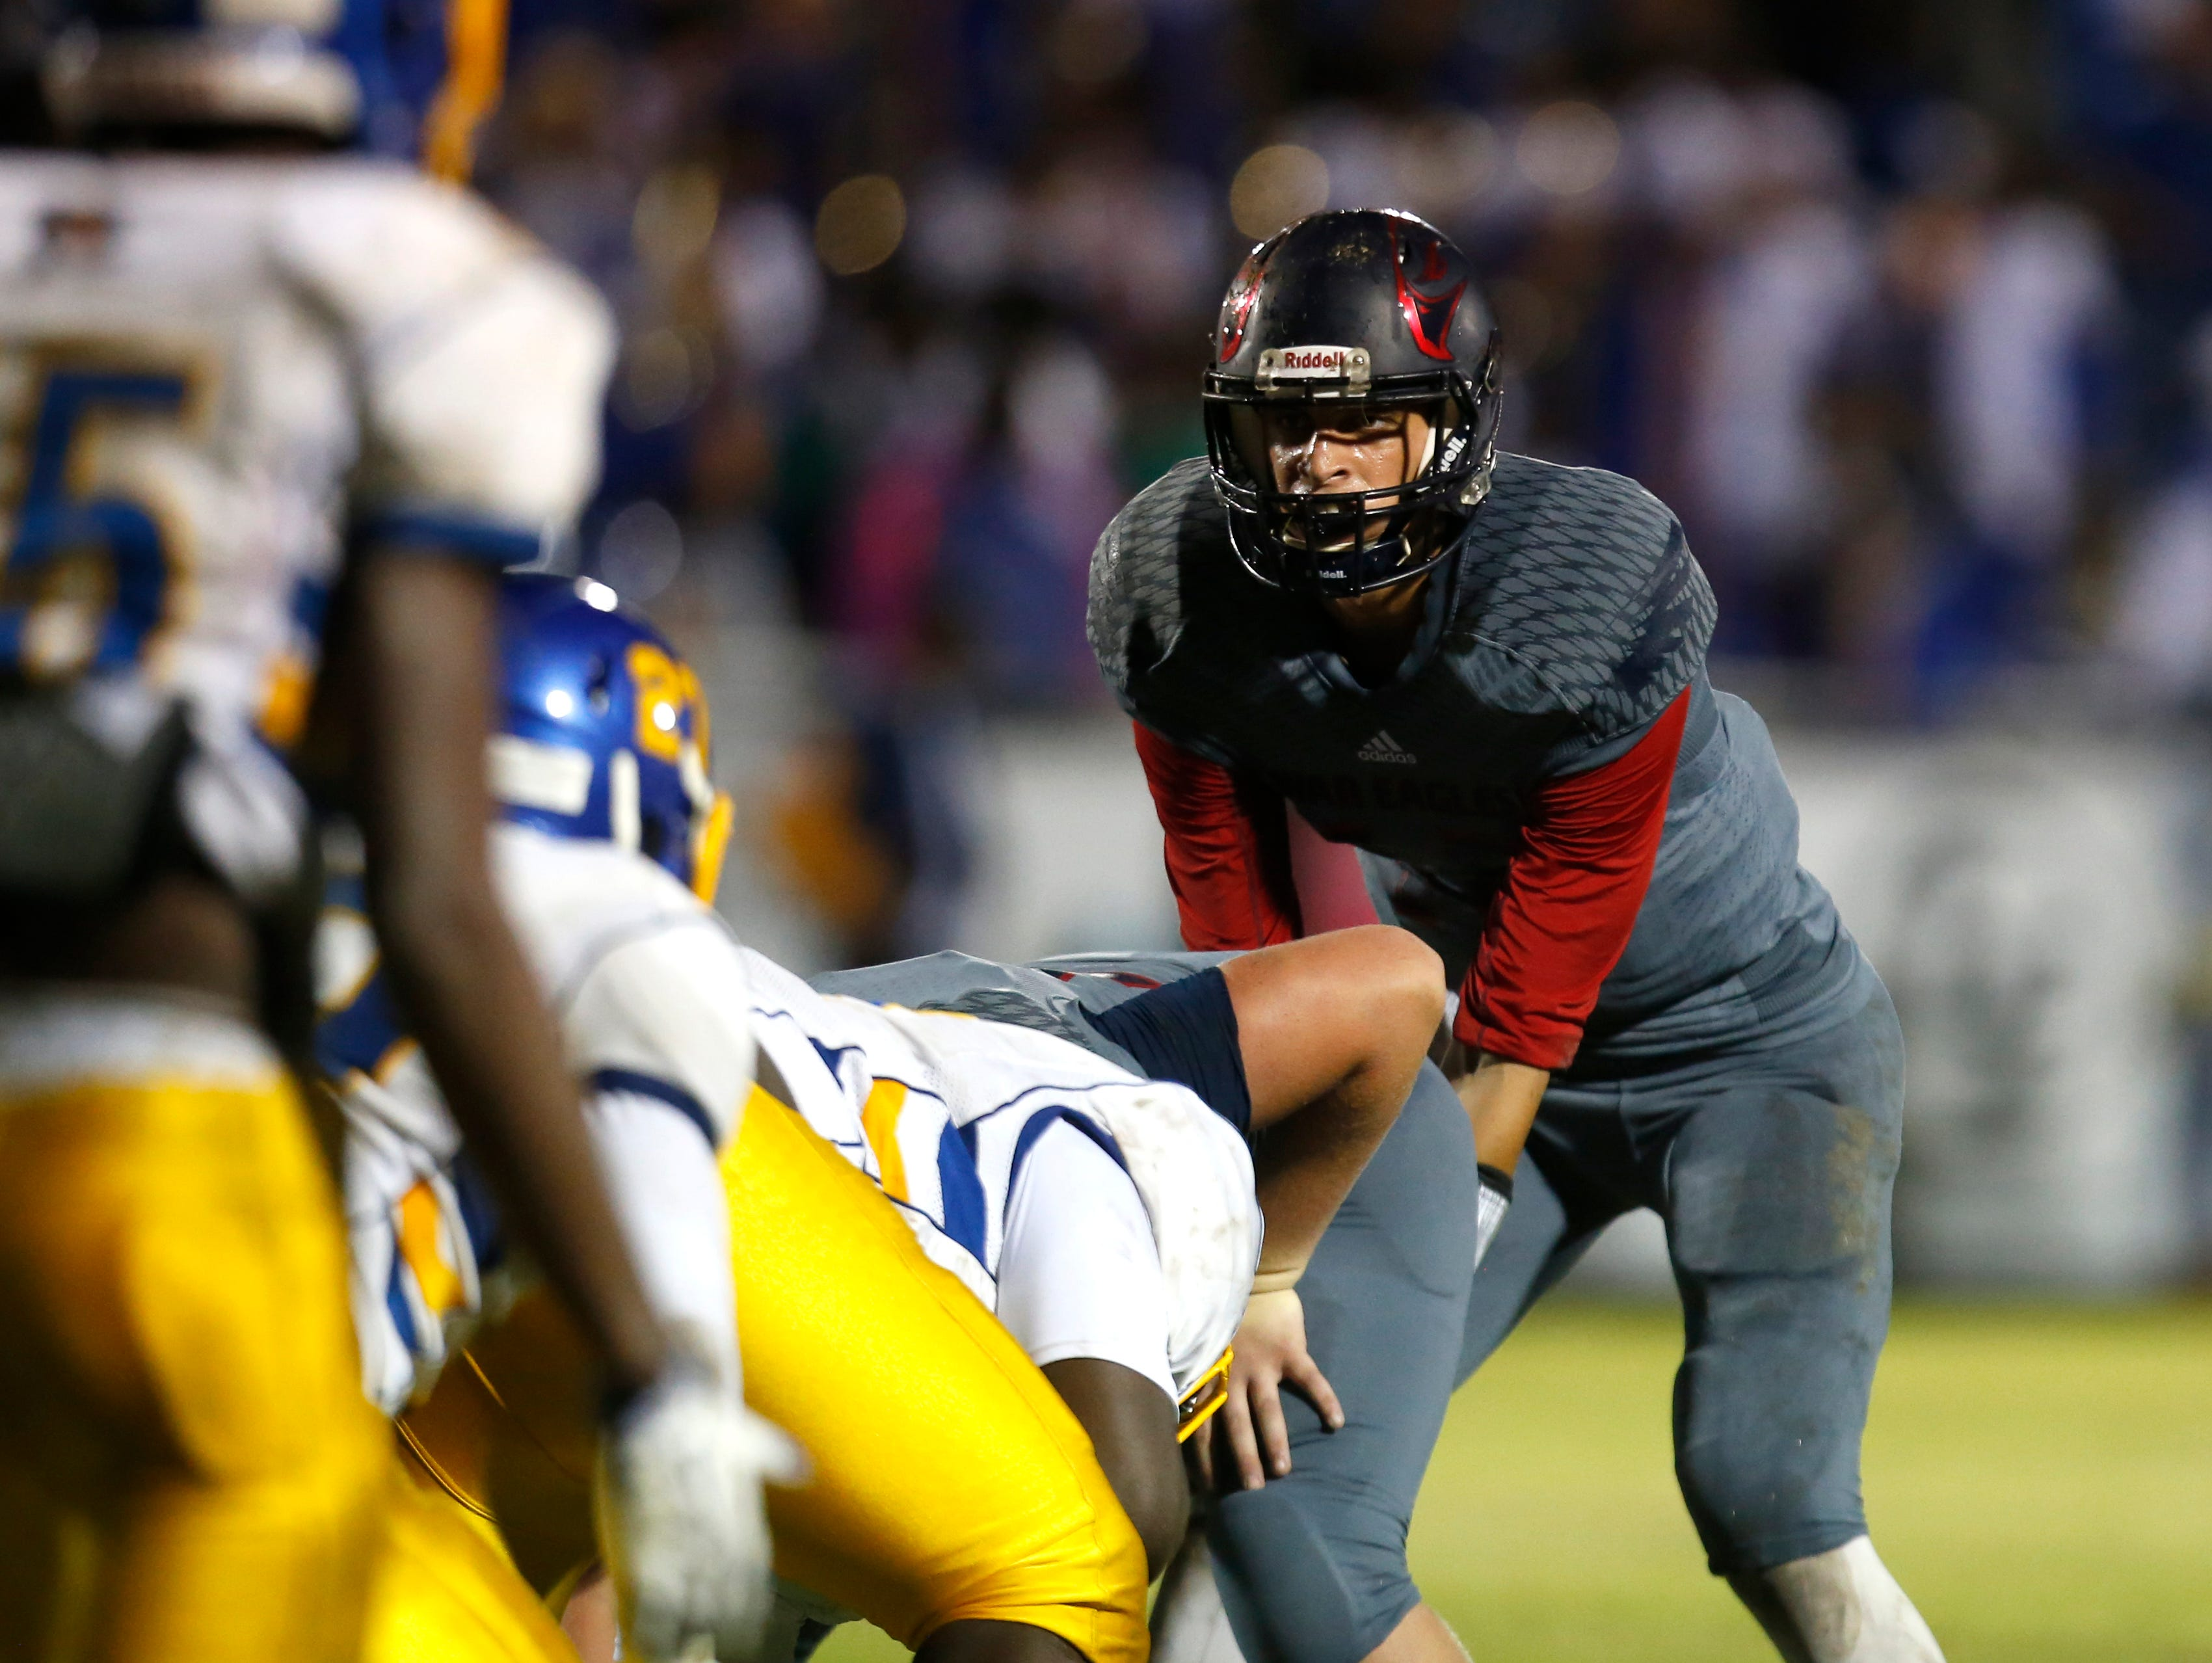 Wakulla's Feleipe Franks gets set to hike the ball against Rickards during their playoff game on Friday